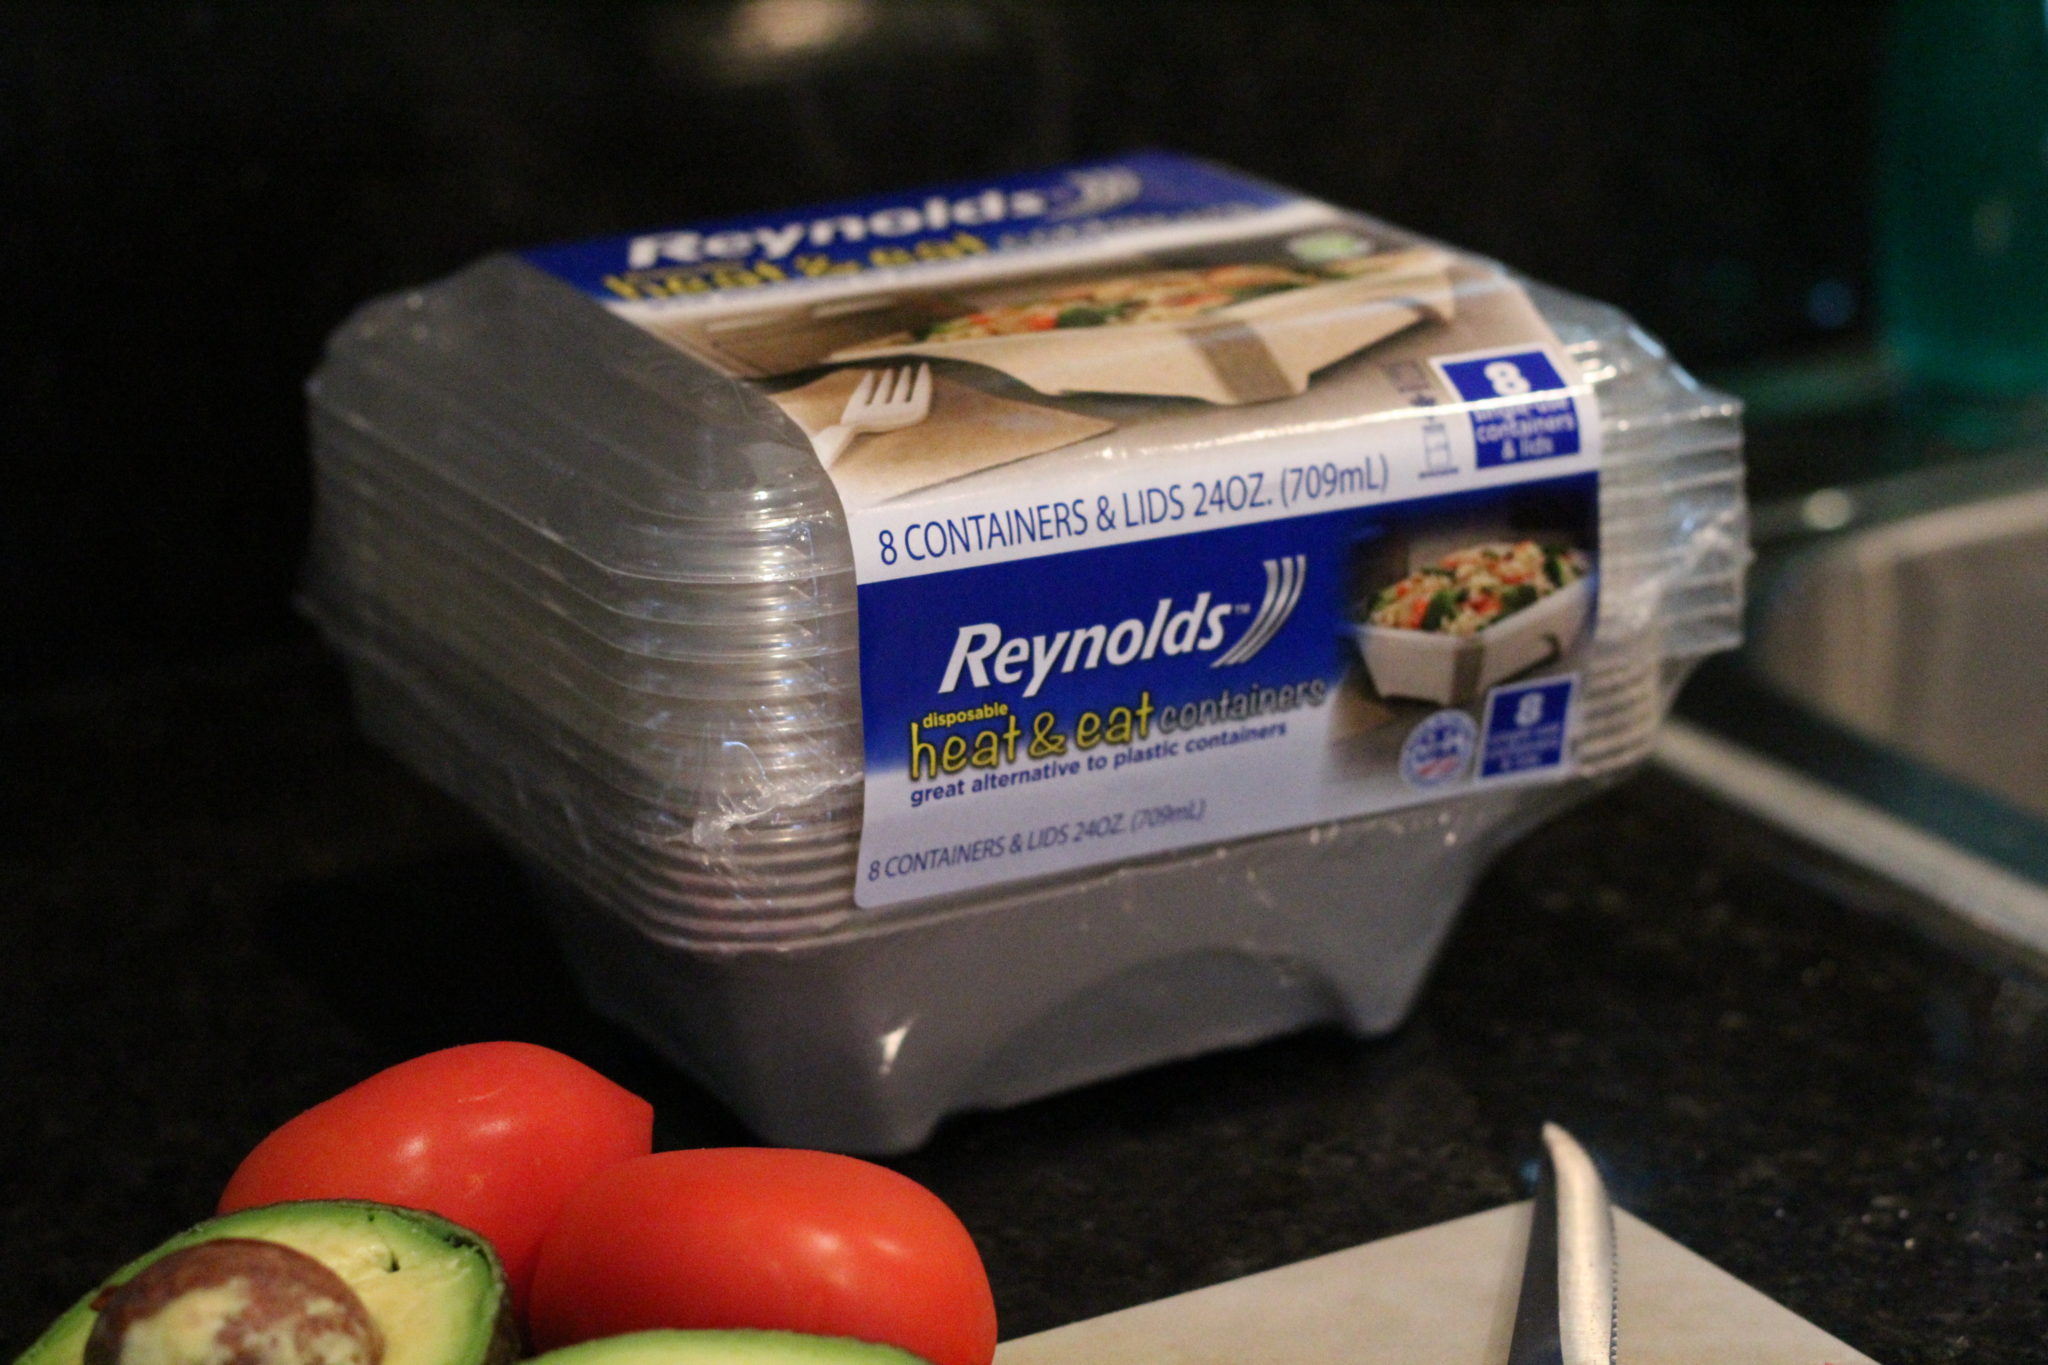 Reynold's Disposable Heat & Eat Containers